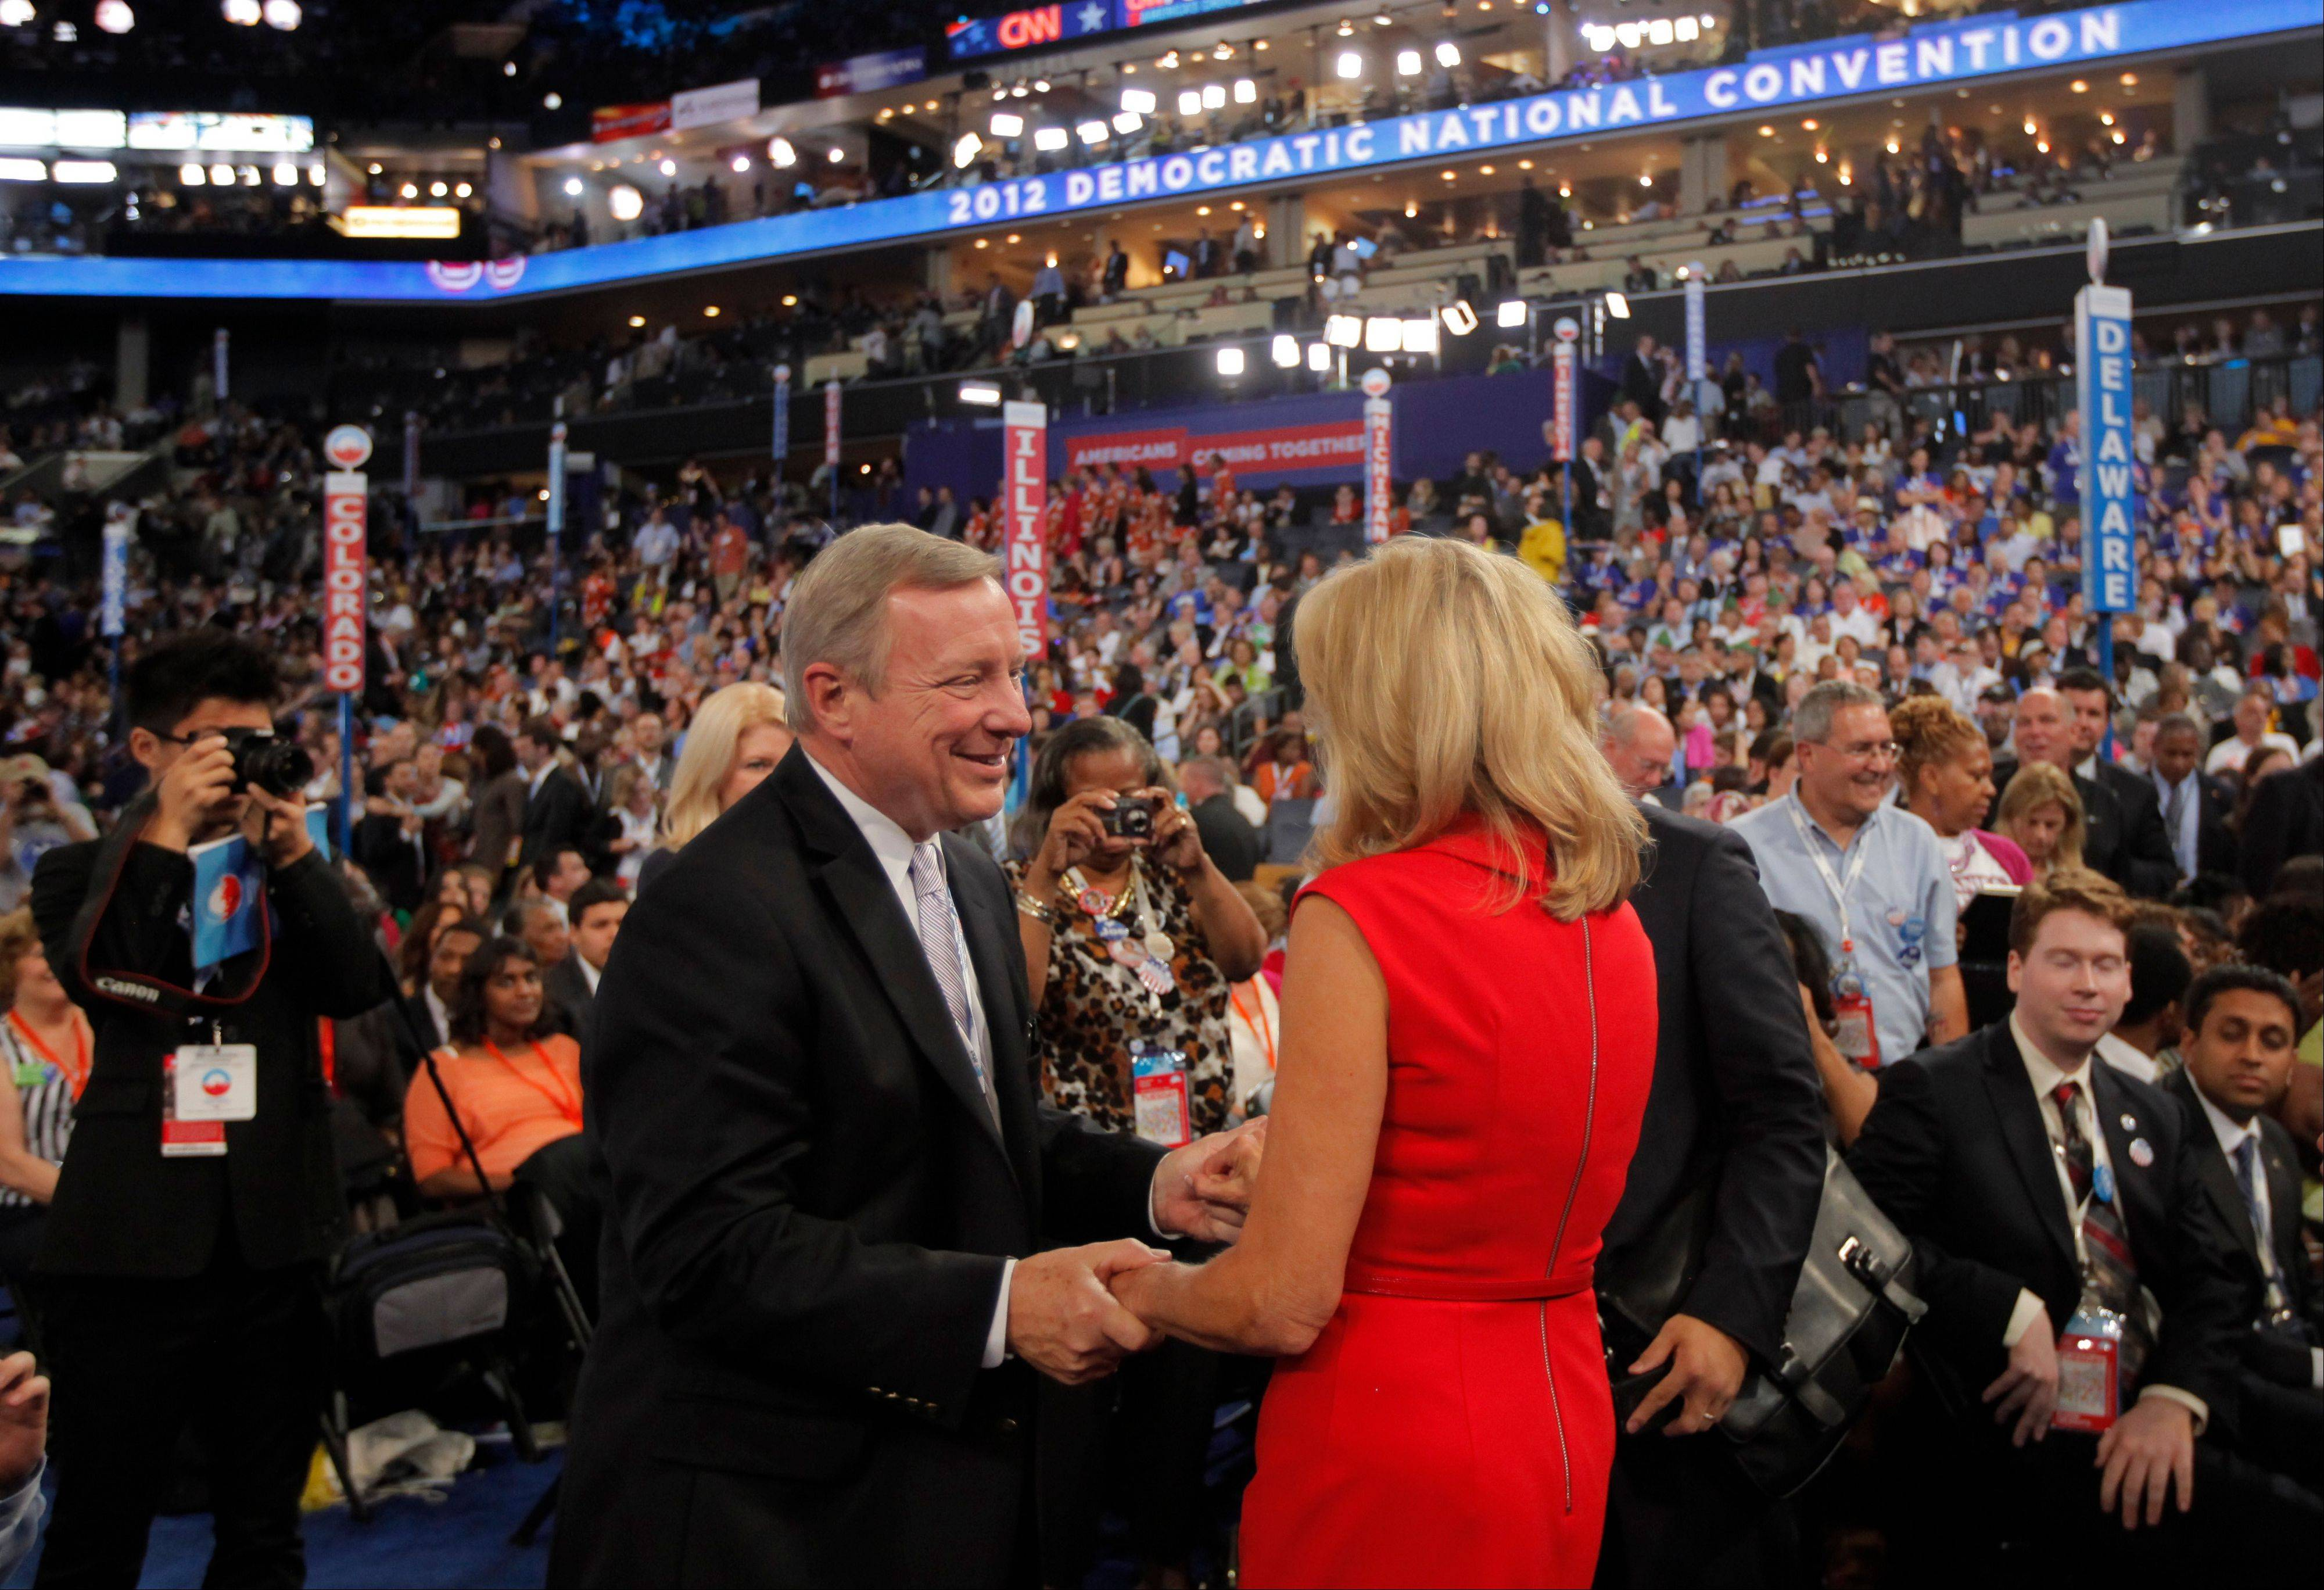 U.S. Sen. Dick Durbin shakes hands with Jill Biden during the Democratic National Convention in Charlotte, N.C., on Tuesday.